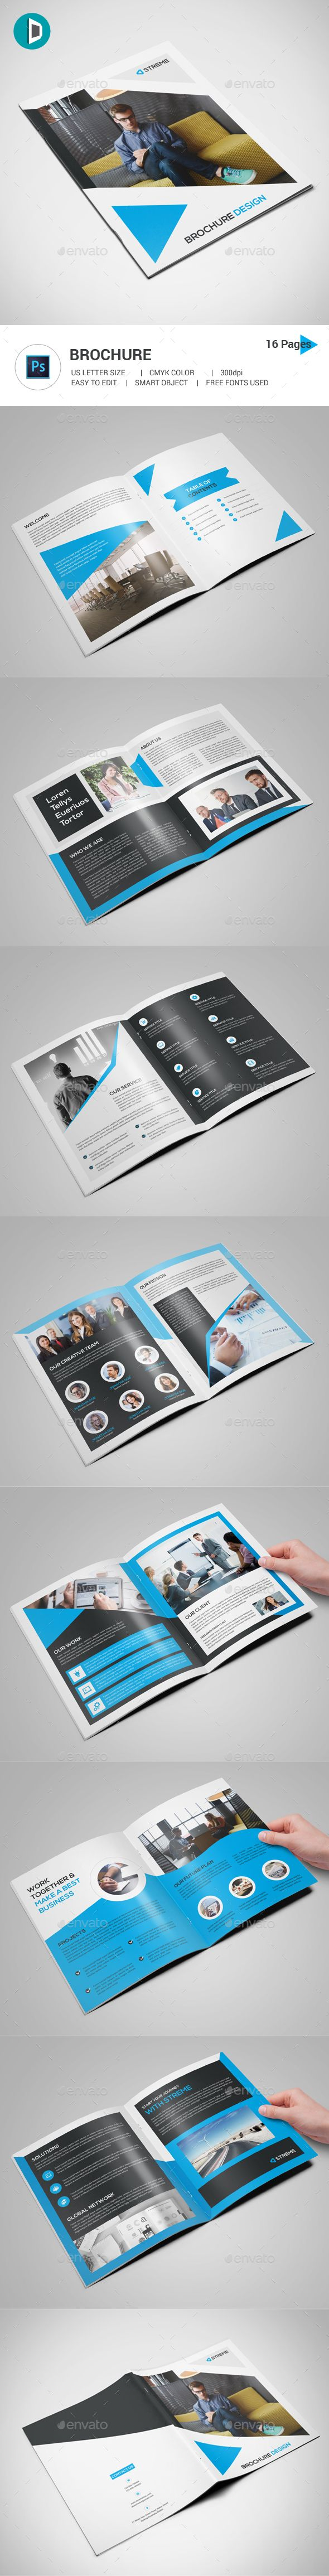 16 Pages Brochure Template PSD - US Letter Size